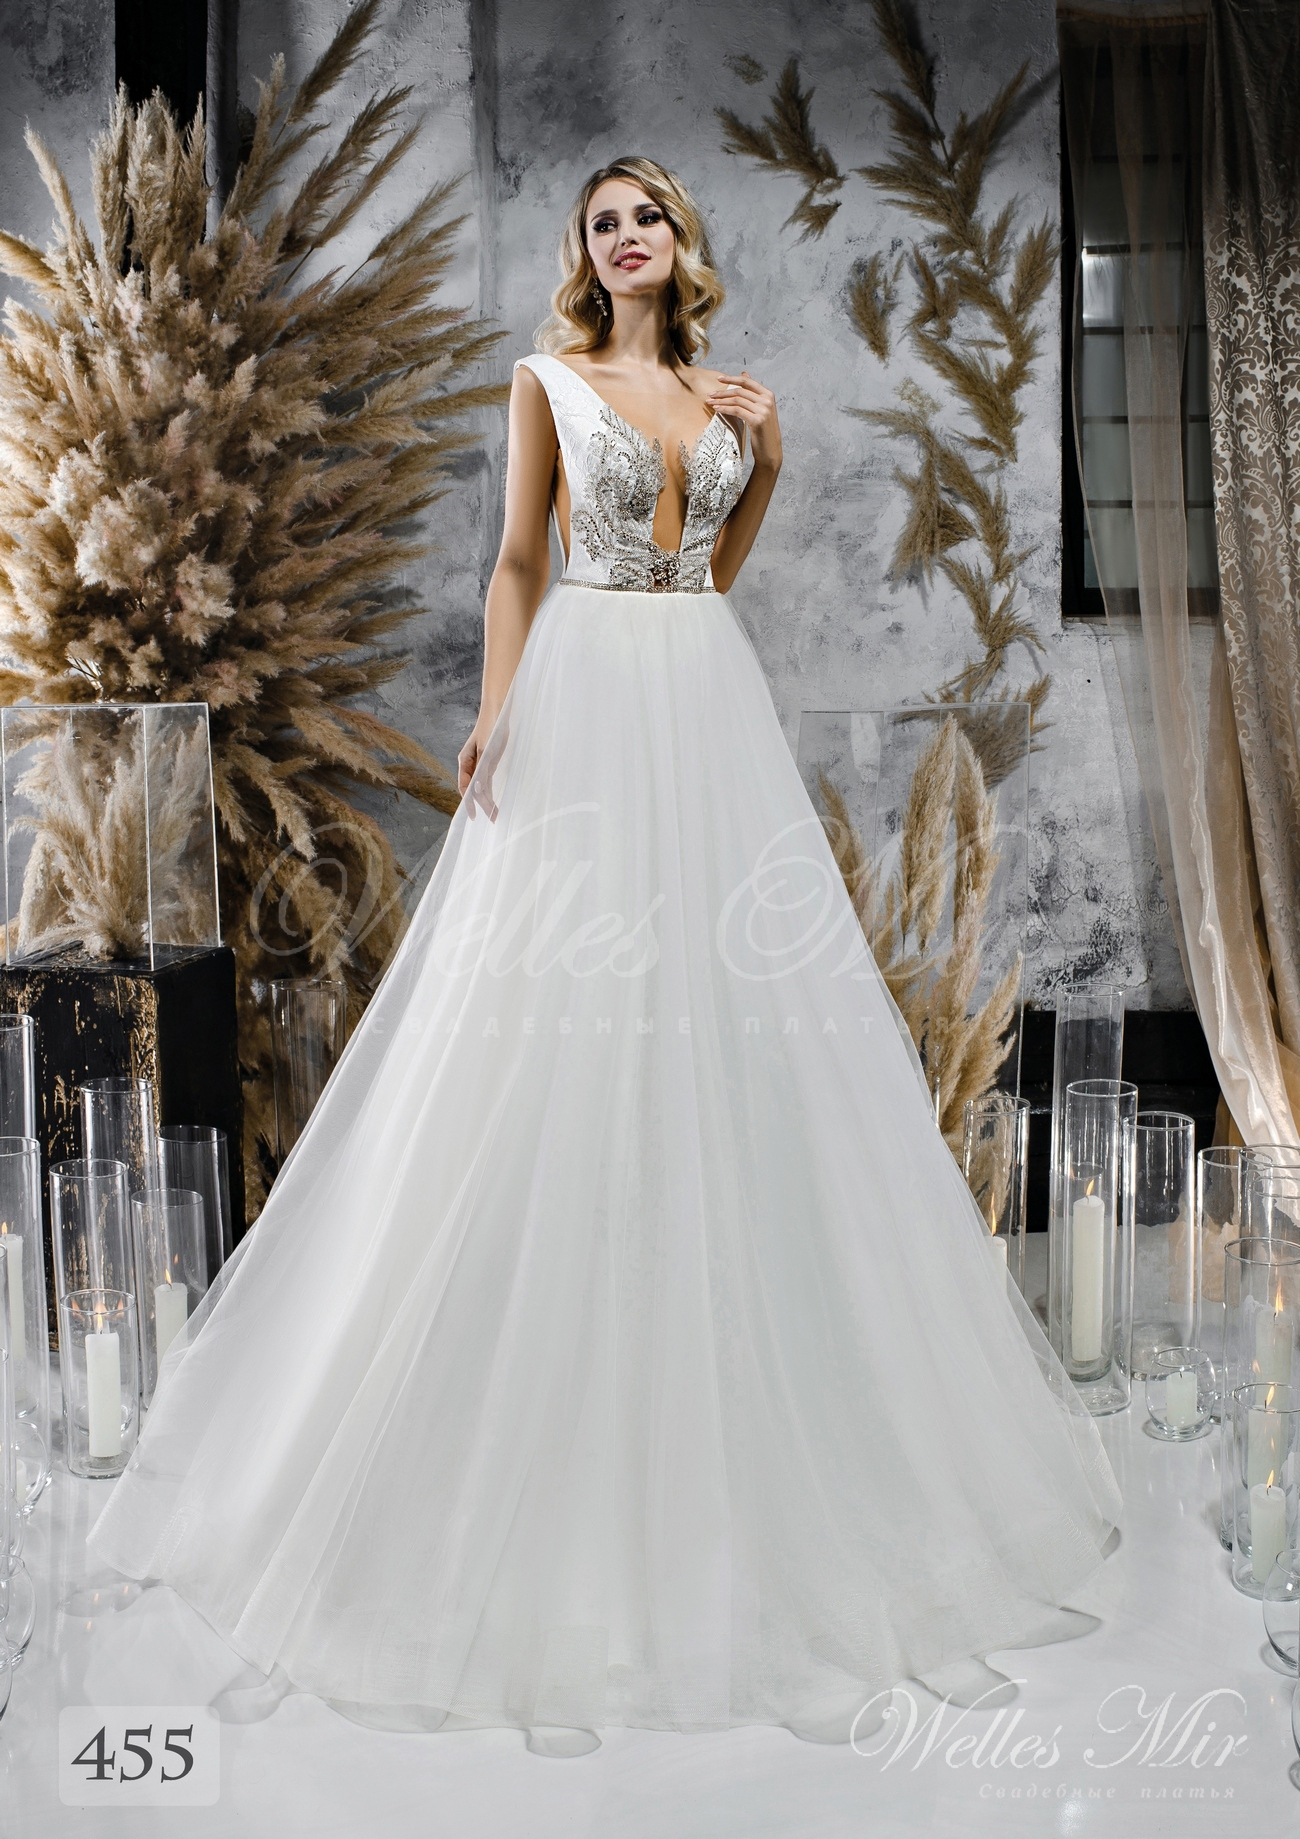 Wedding dress with a lush skirt and split corset wholesale from WellesMir